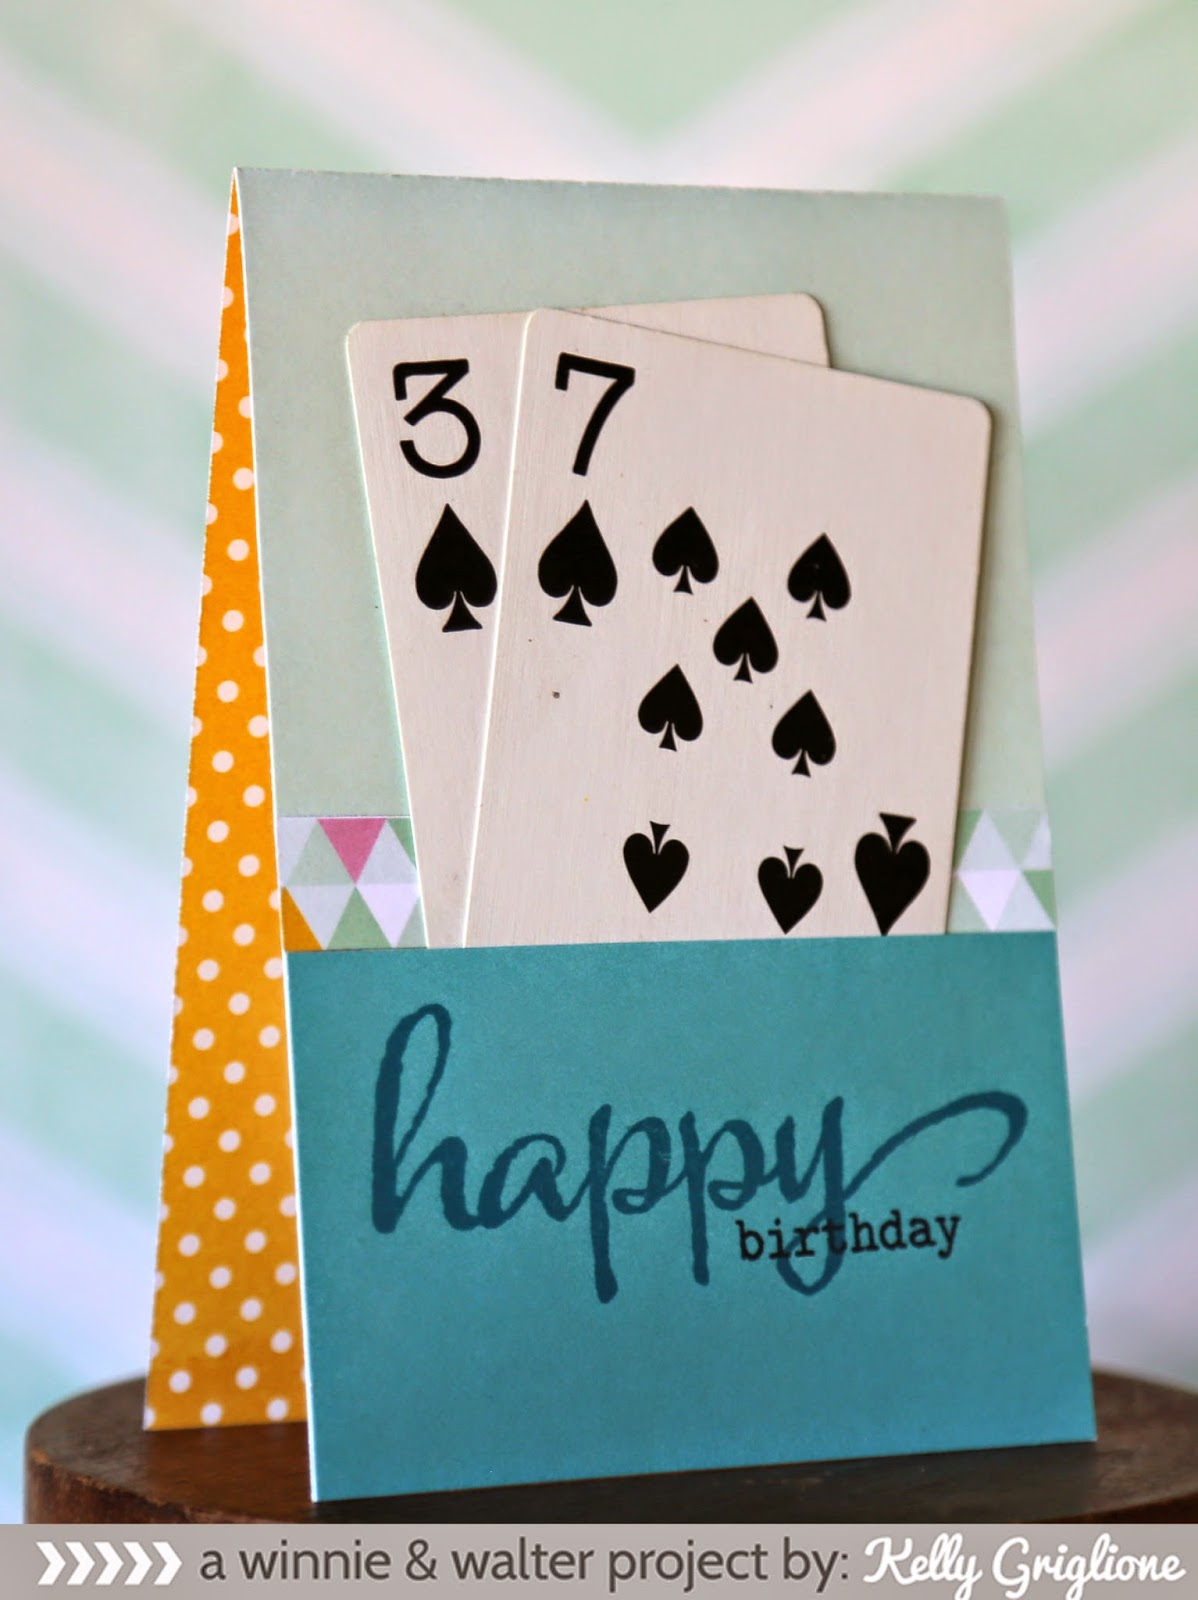 winnie walter blog Spades of Spring with Kelly – Poker Birthday Cards